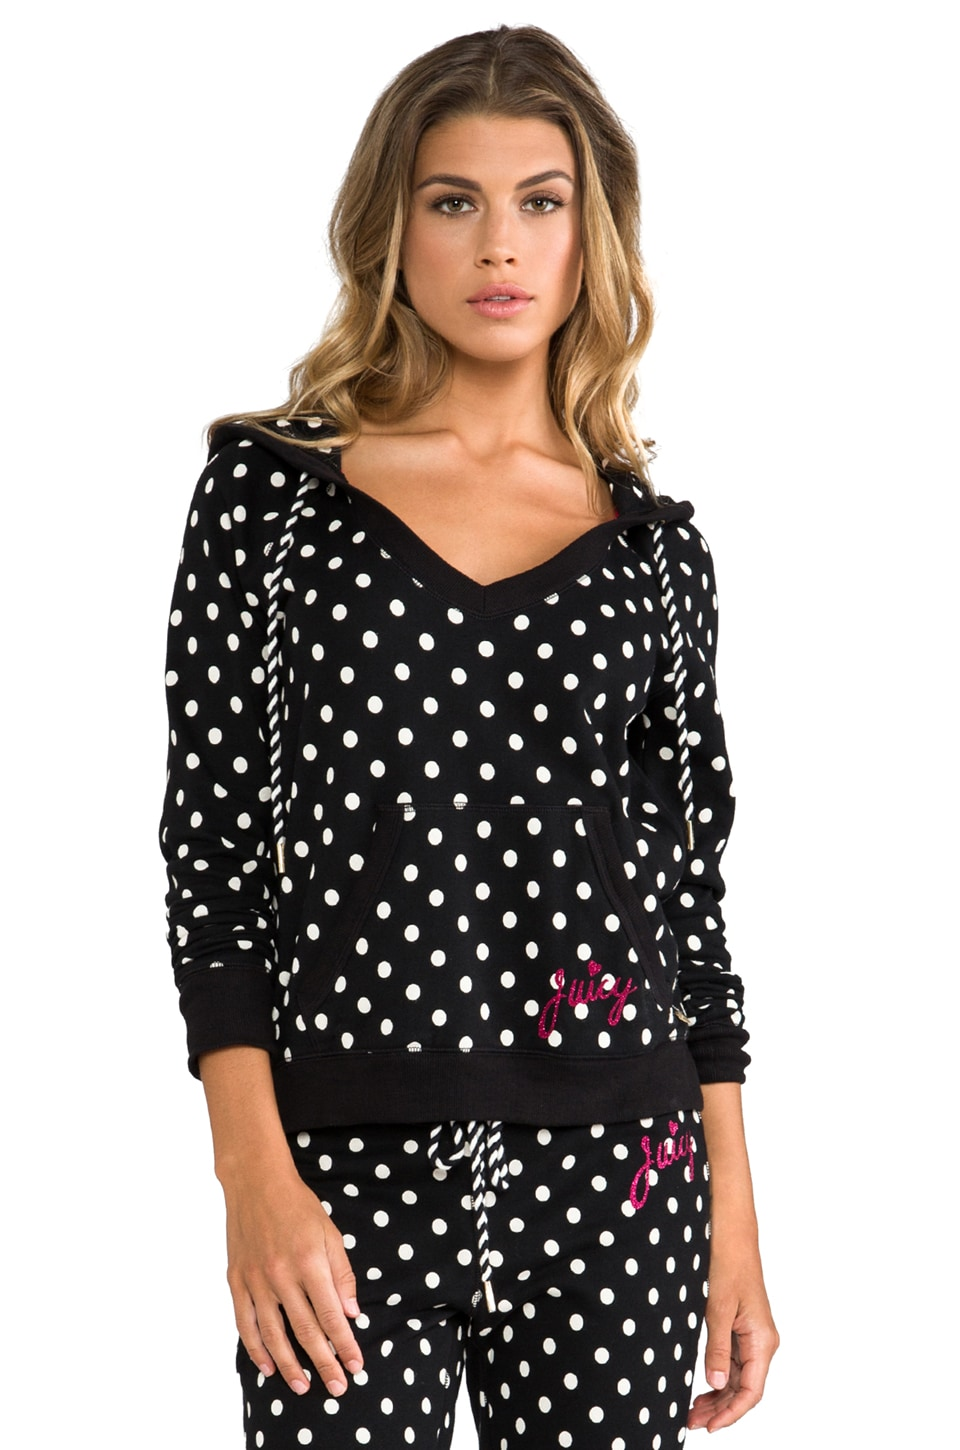 Juicy Couture Polka Dot French Terry Pullover in Black/Angel Preppy